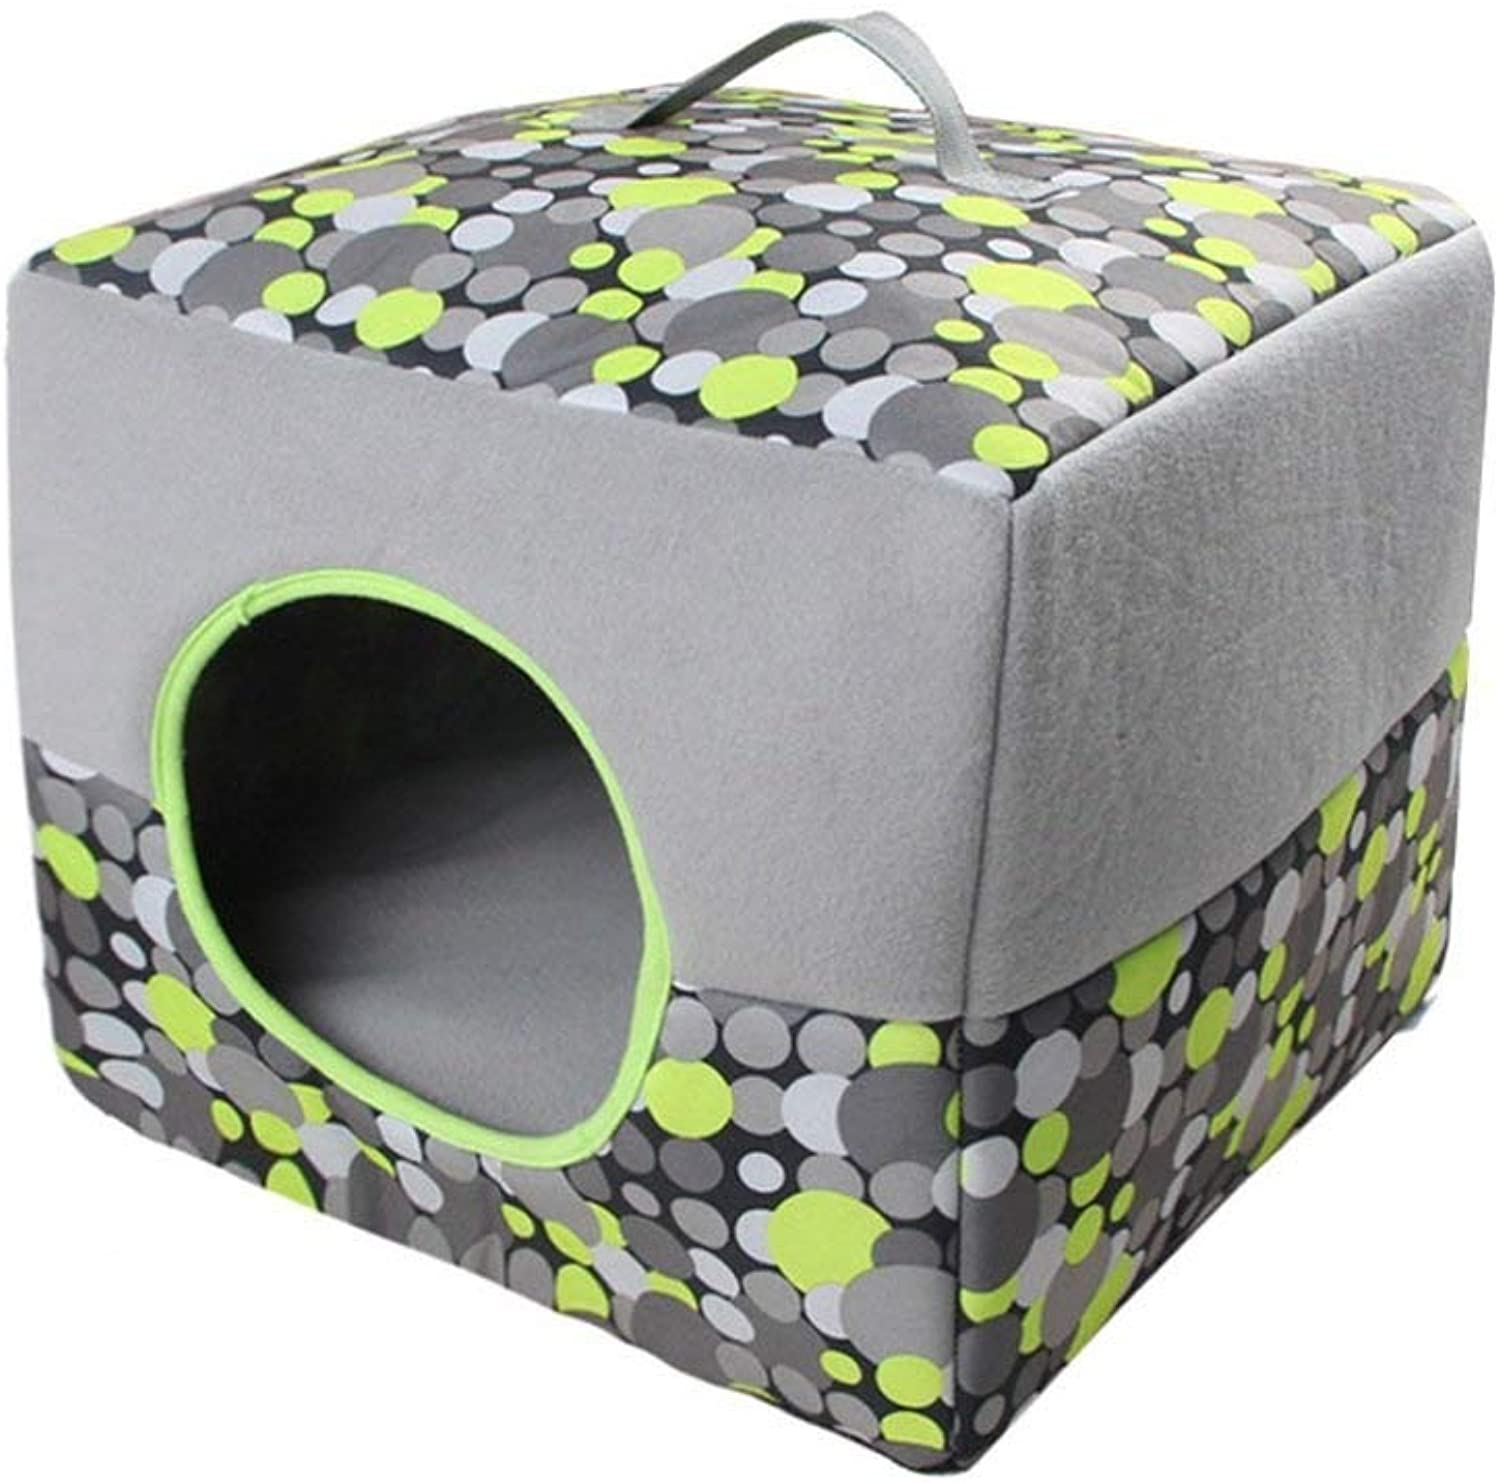 Gperw Soft pet bed Four Seasons Cat And Dog Kennel Foldable Retractable Breathable Pet Seat. soft Non Slip Cushion Pad